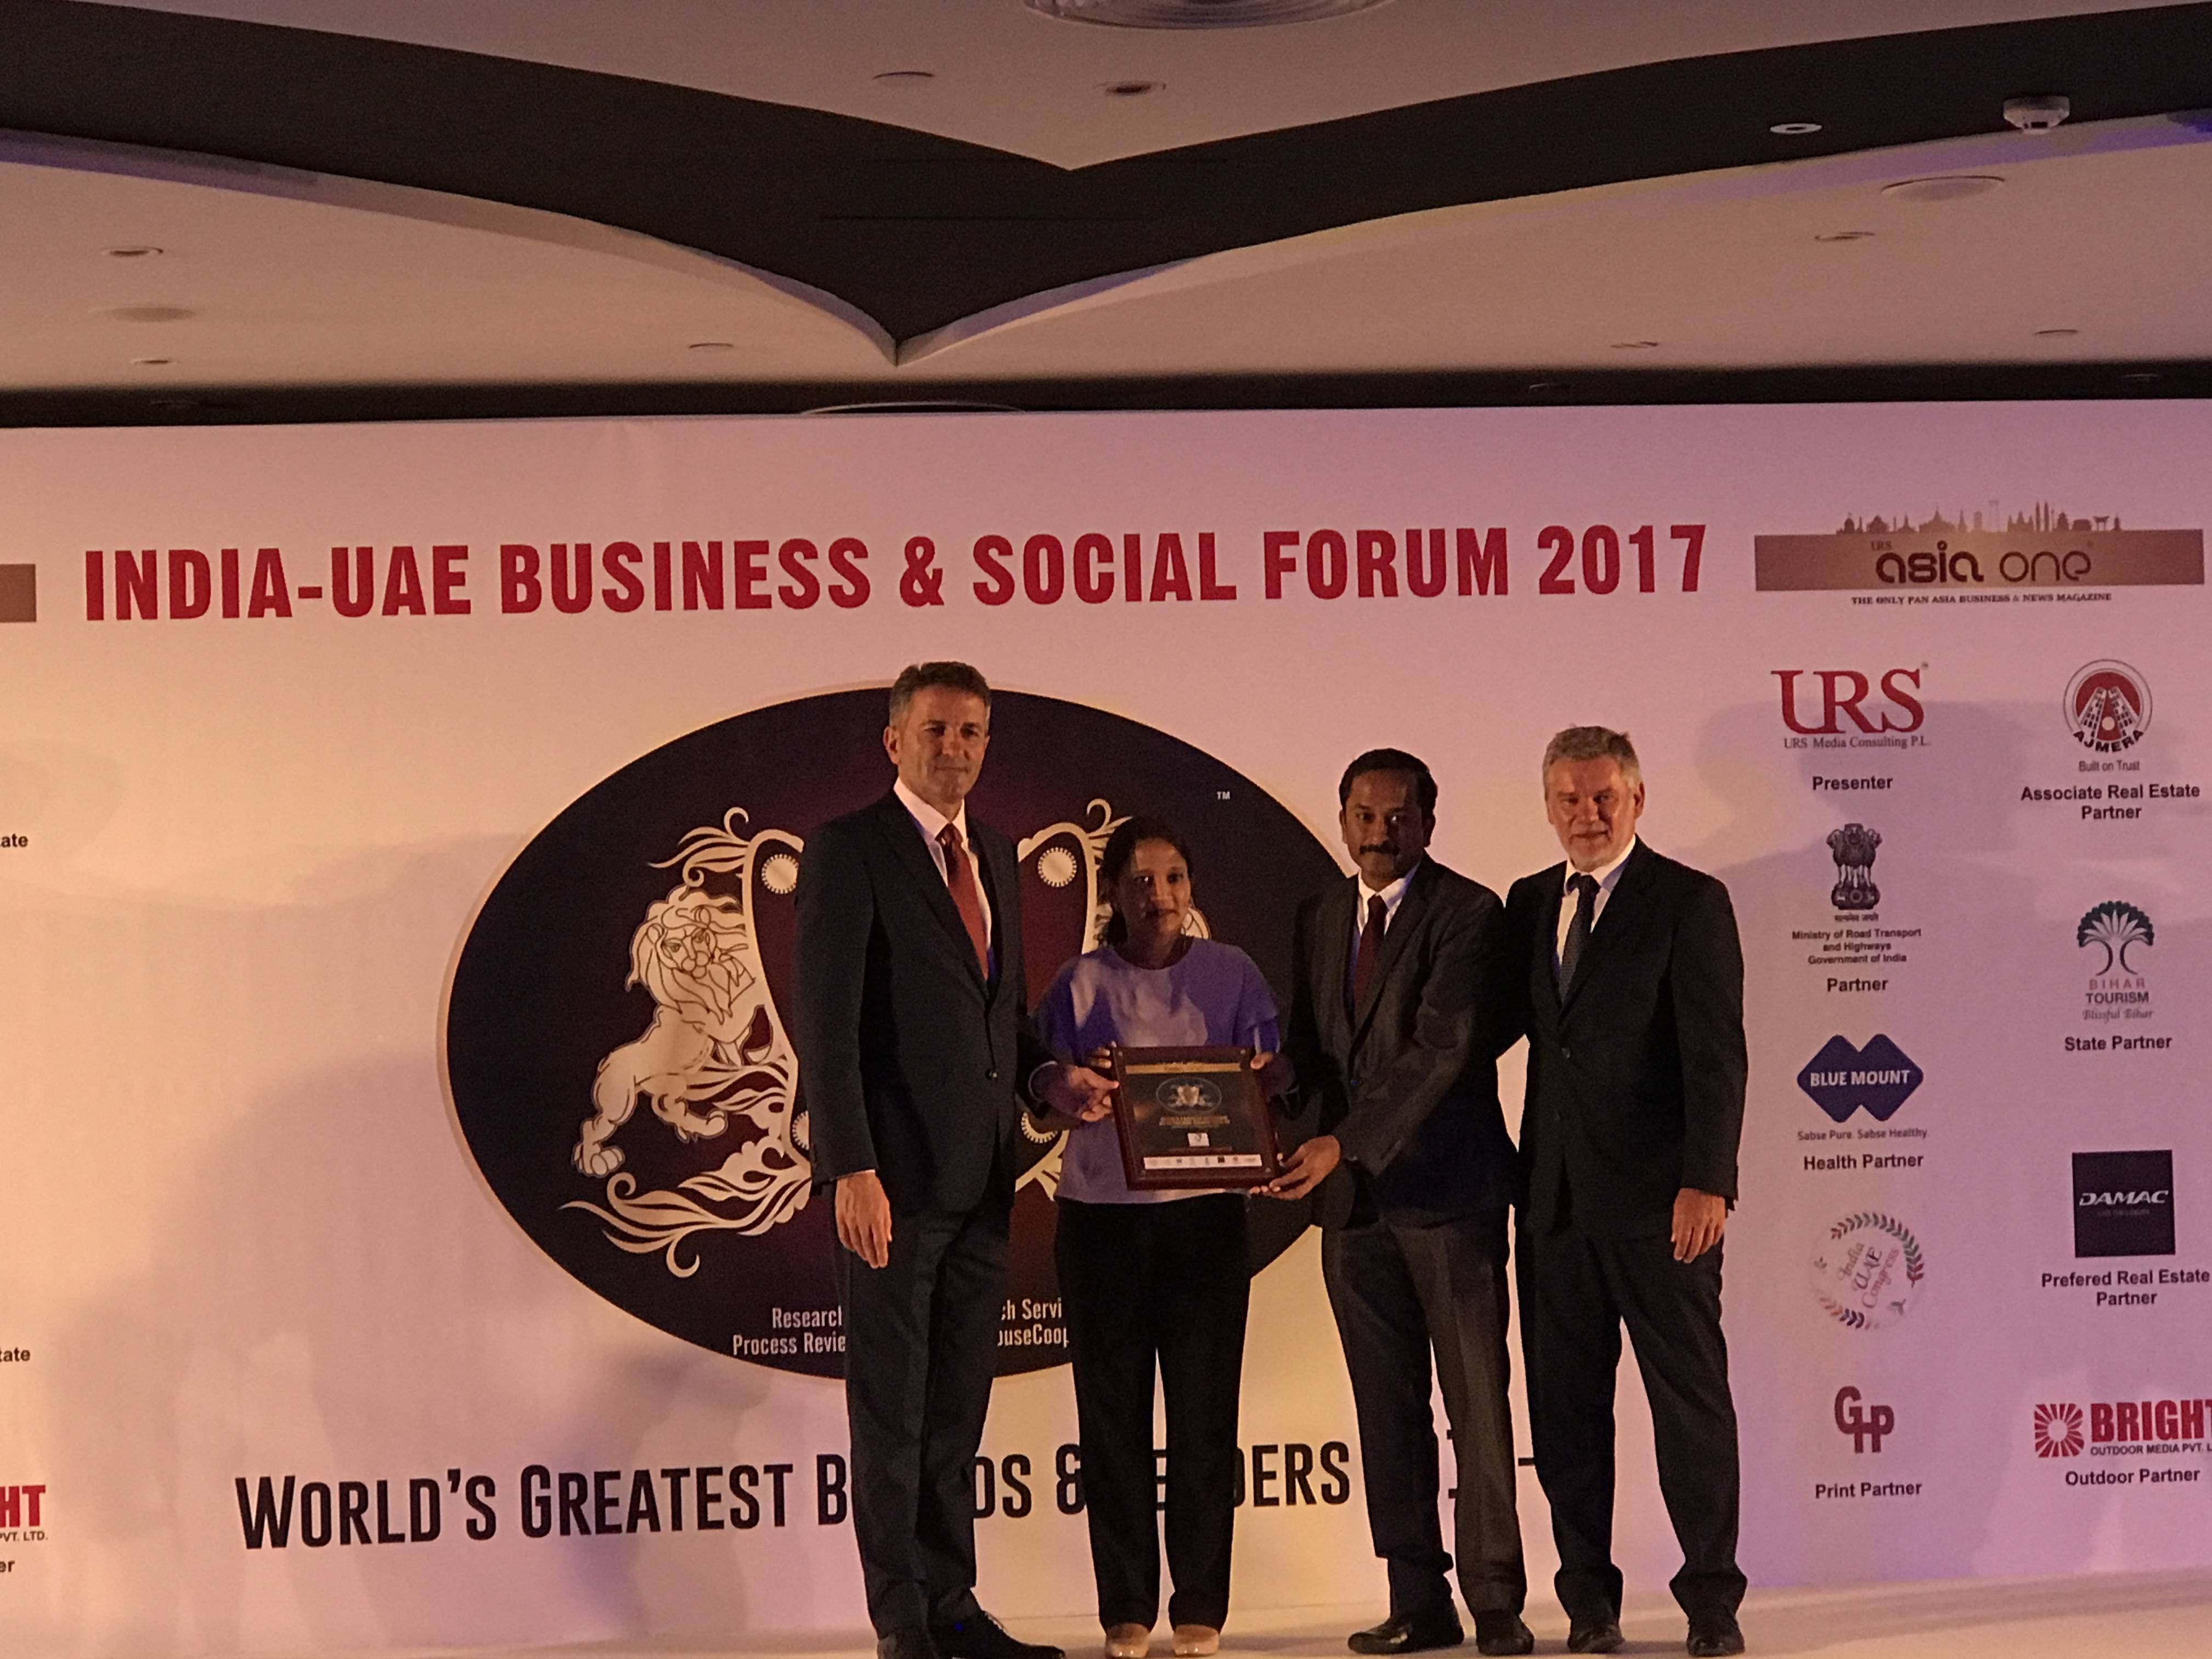 Aspire is recognized as India's most fastest growing brand16-17 Asia One magazine & URS Media Consulting PL, India–UAE Business & Social Forum – 2017.